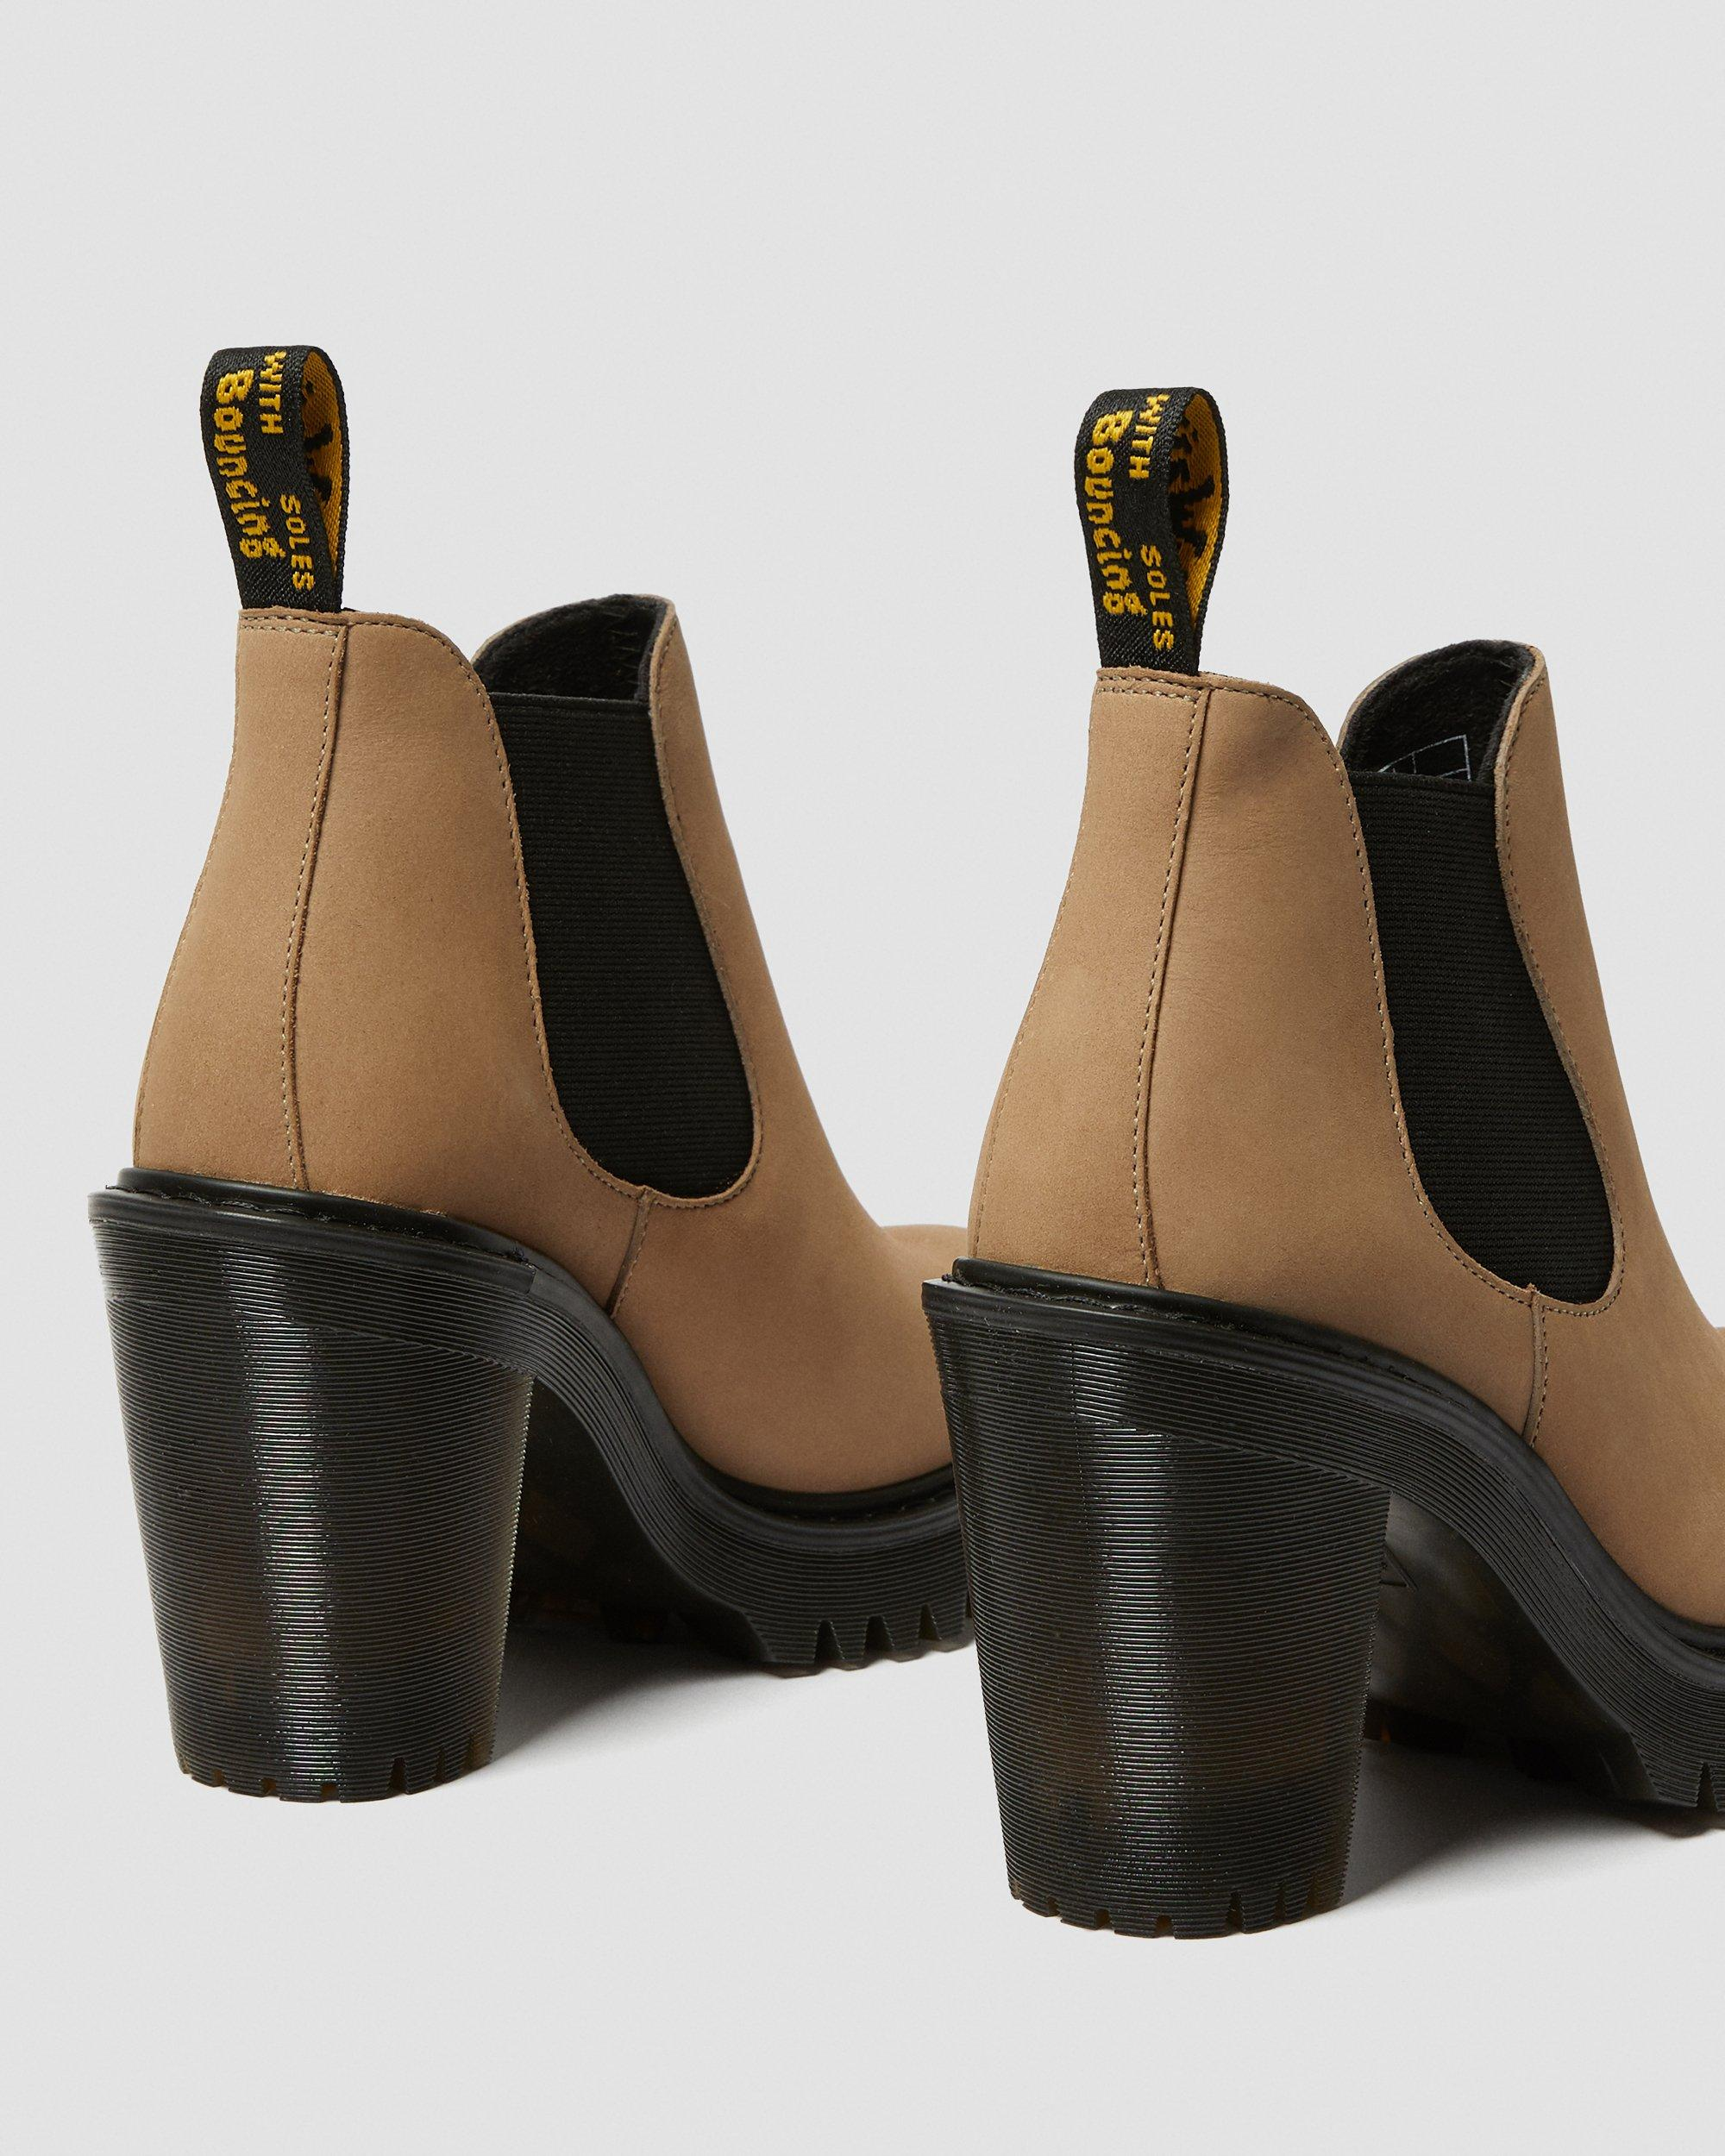 HURSTON WOMEN'S SUEDE HEELED CHELSEA BOOTS   New Arrivals